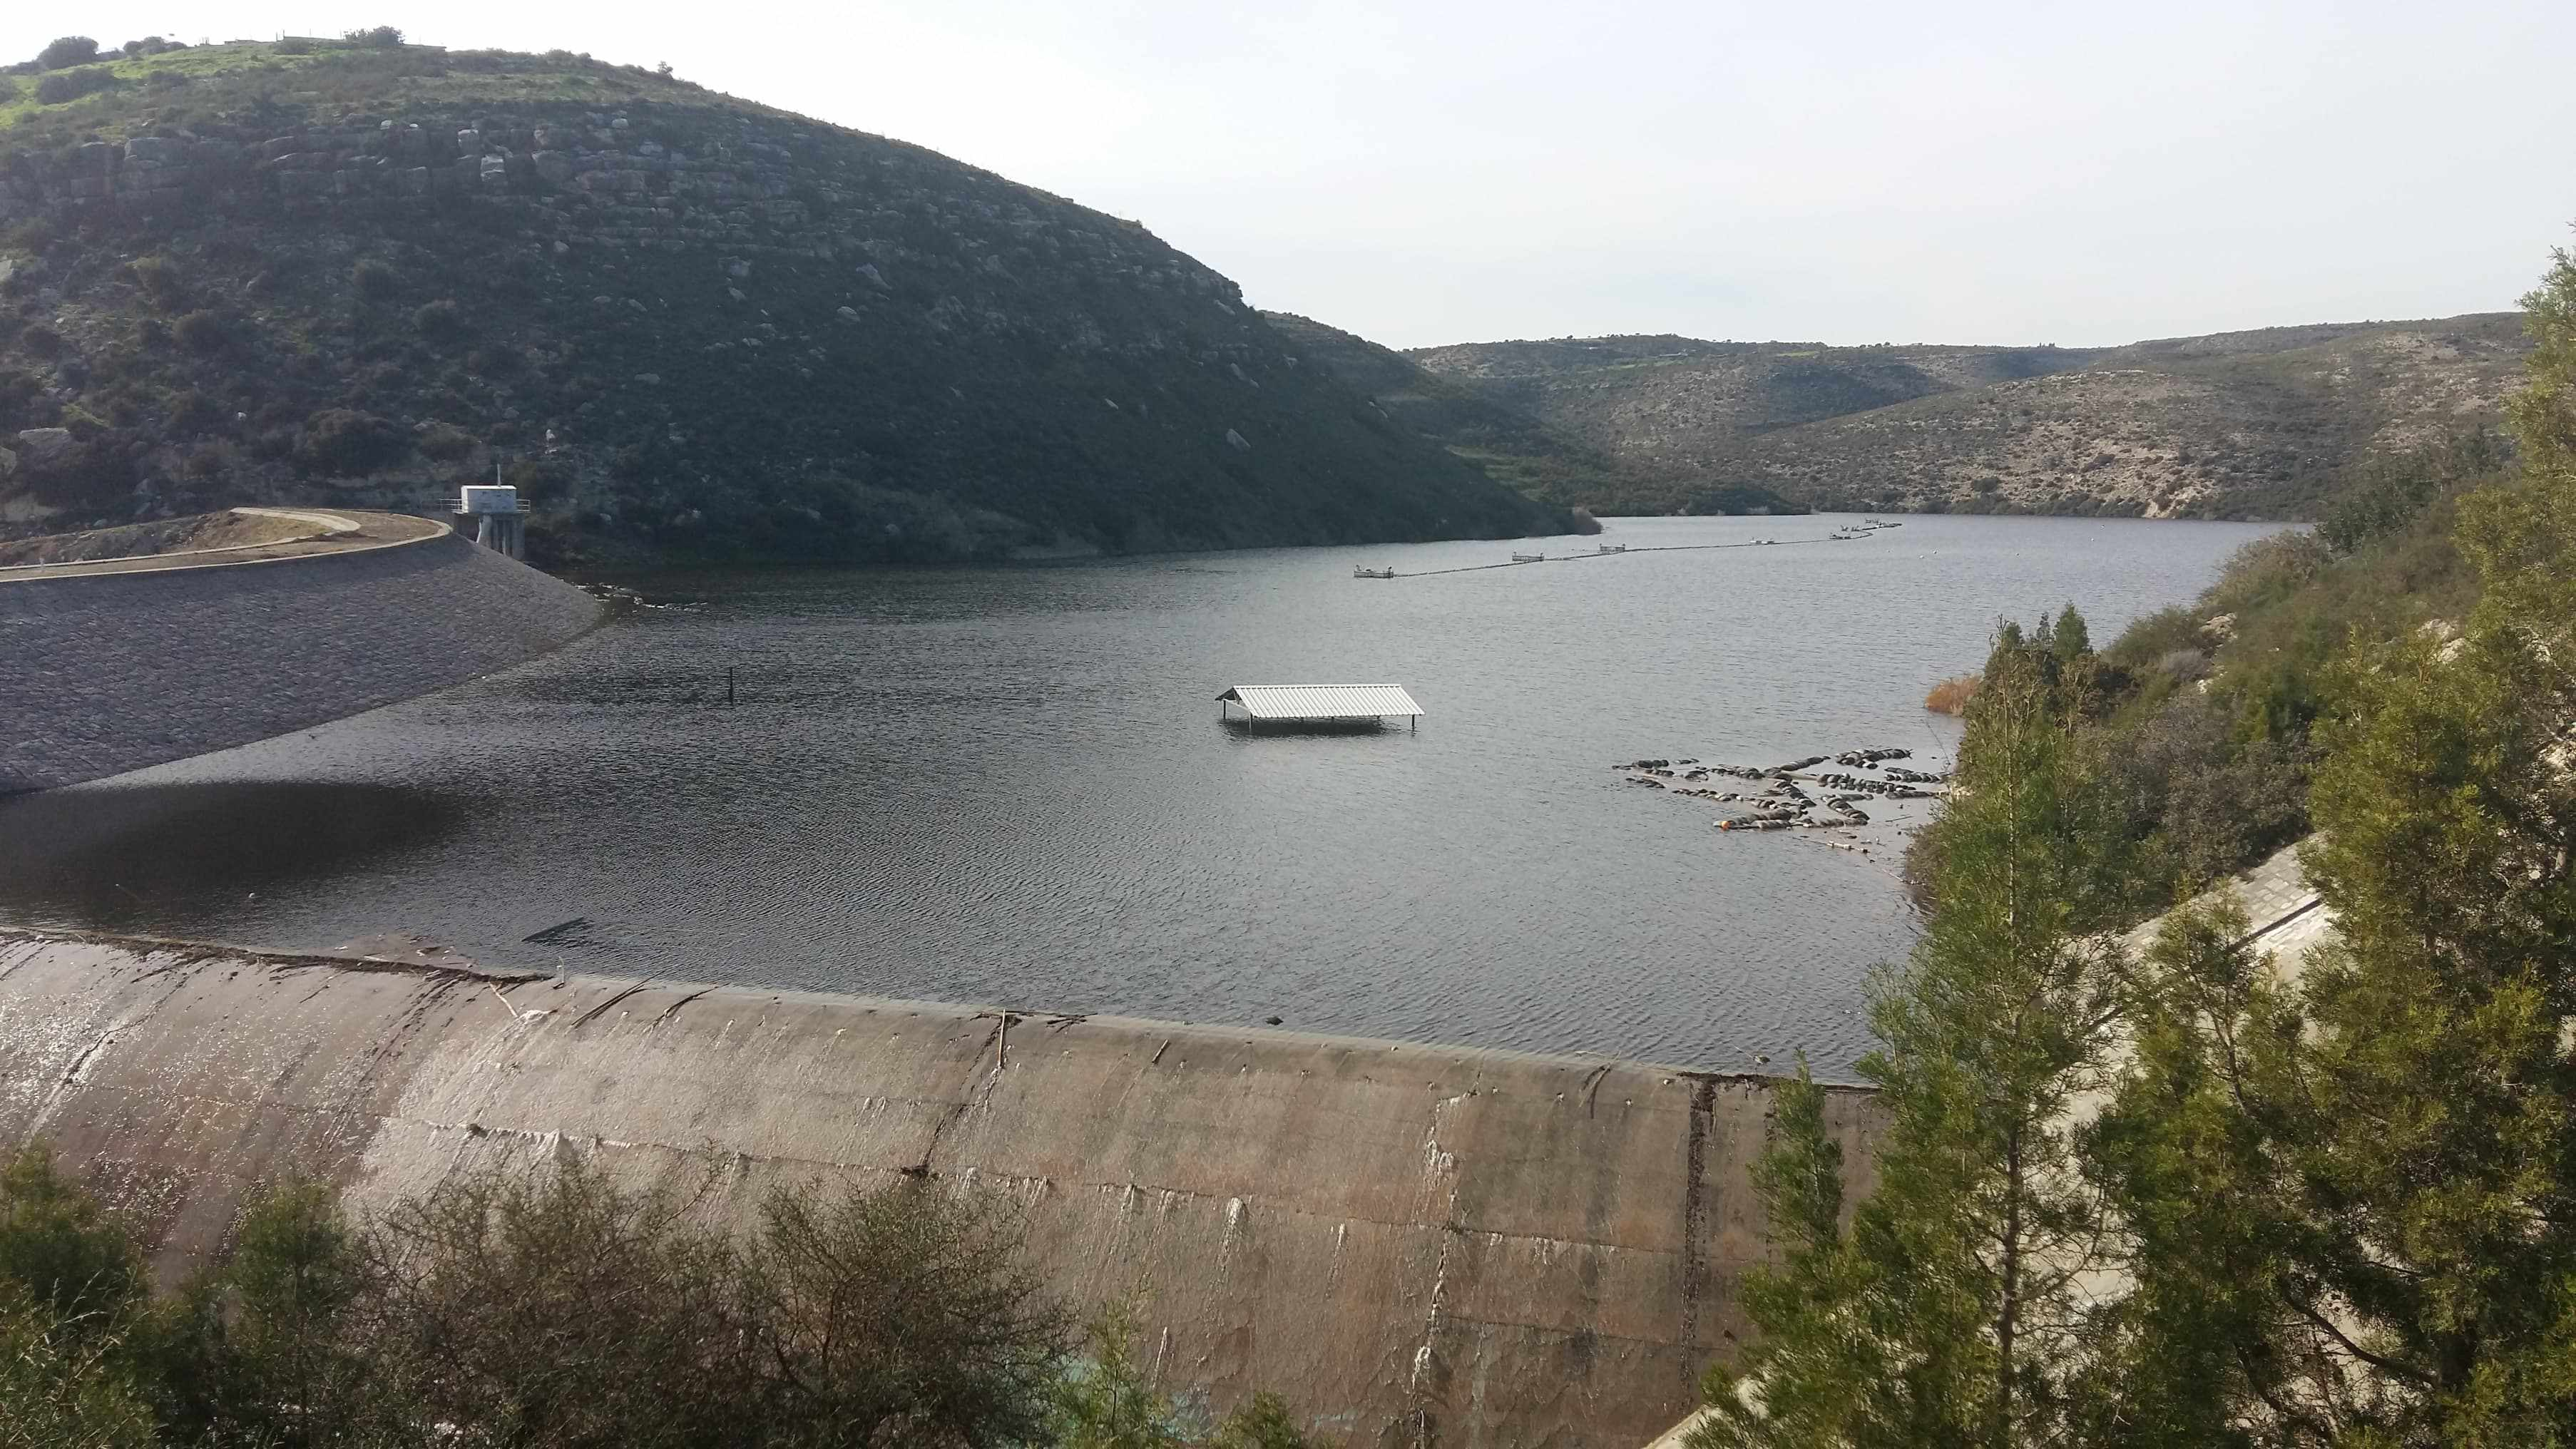 The Polemidia Dam has overflowed (VIDEO)